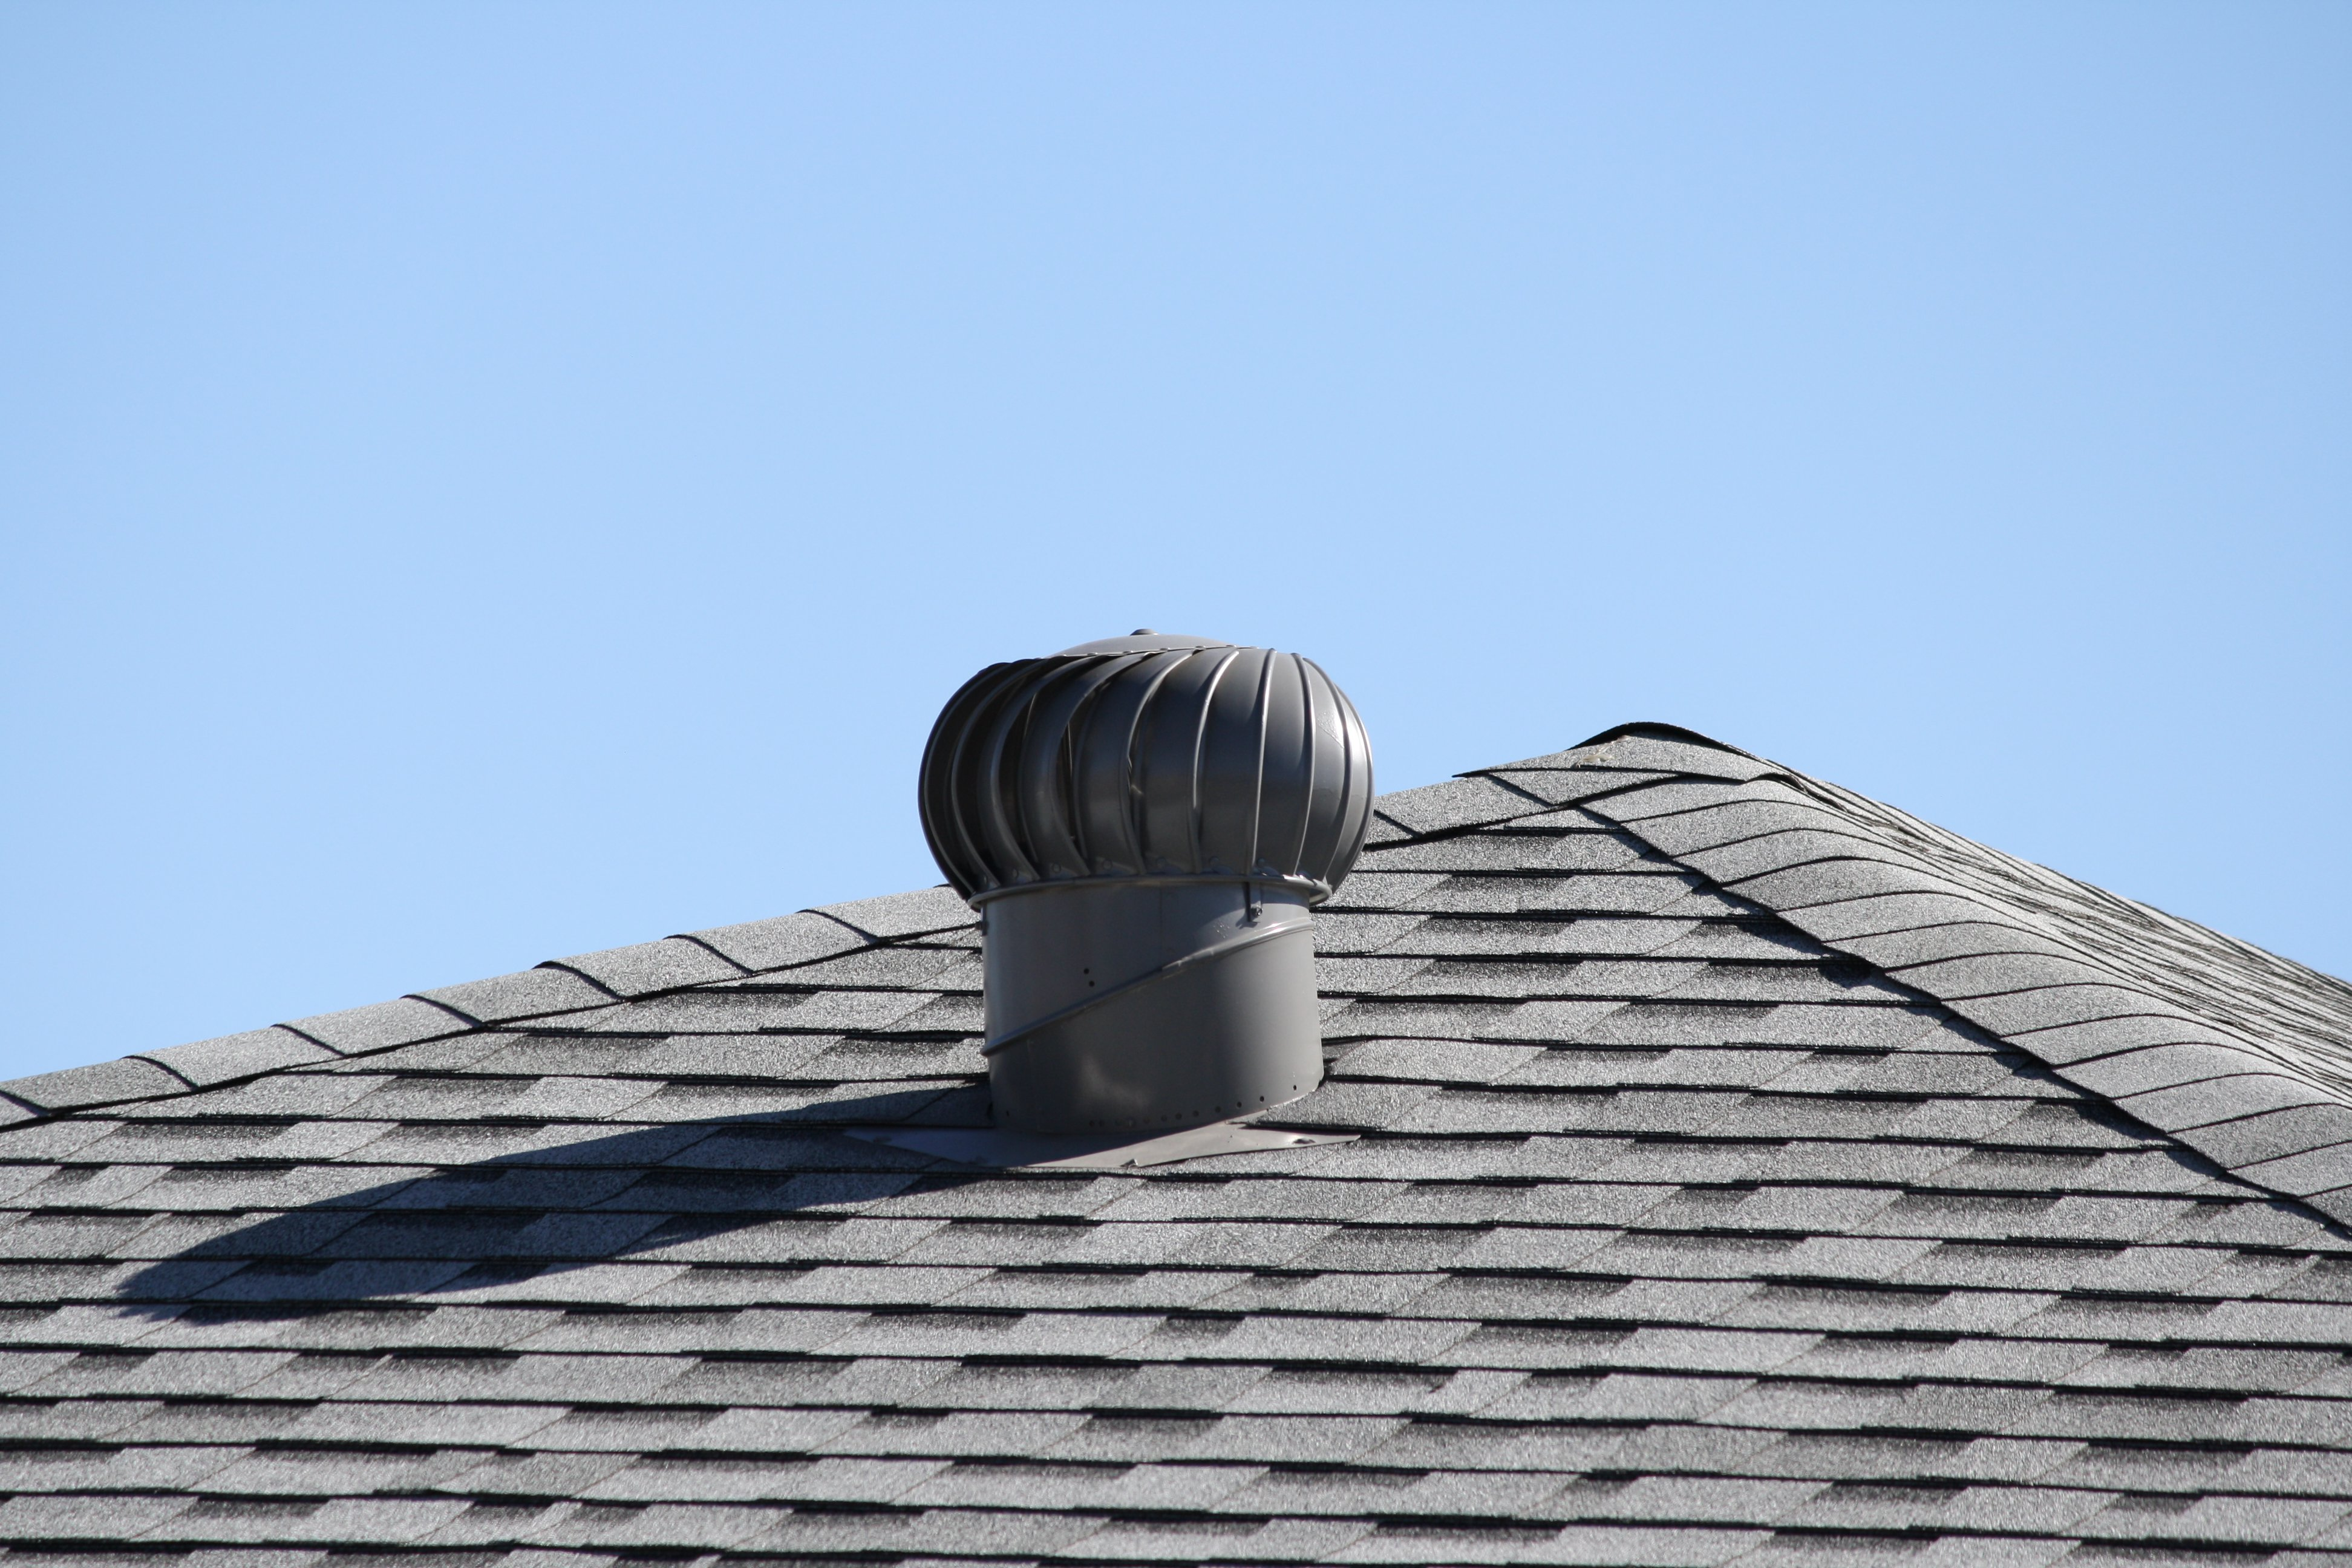 Spinning Turbine Attic Vent Picture Free Photograph